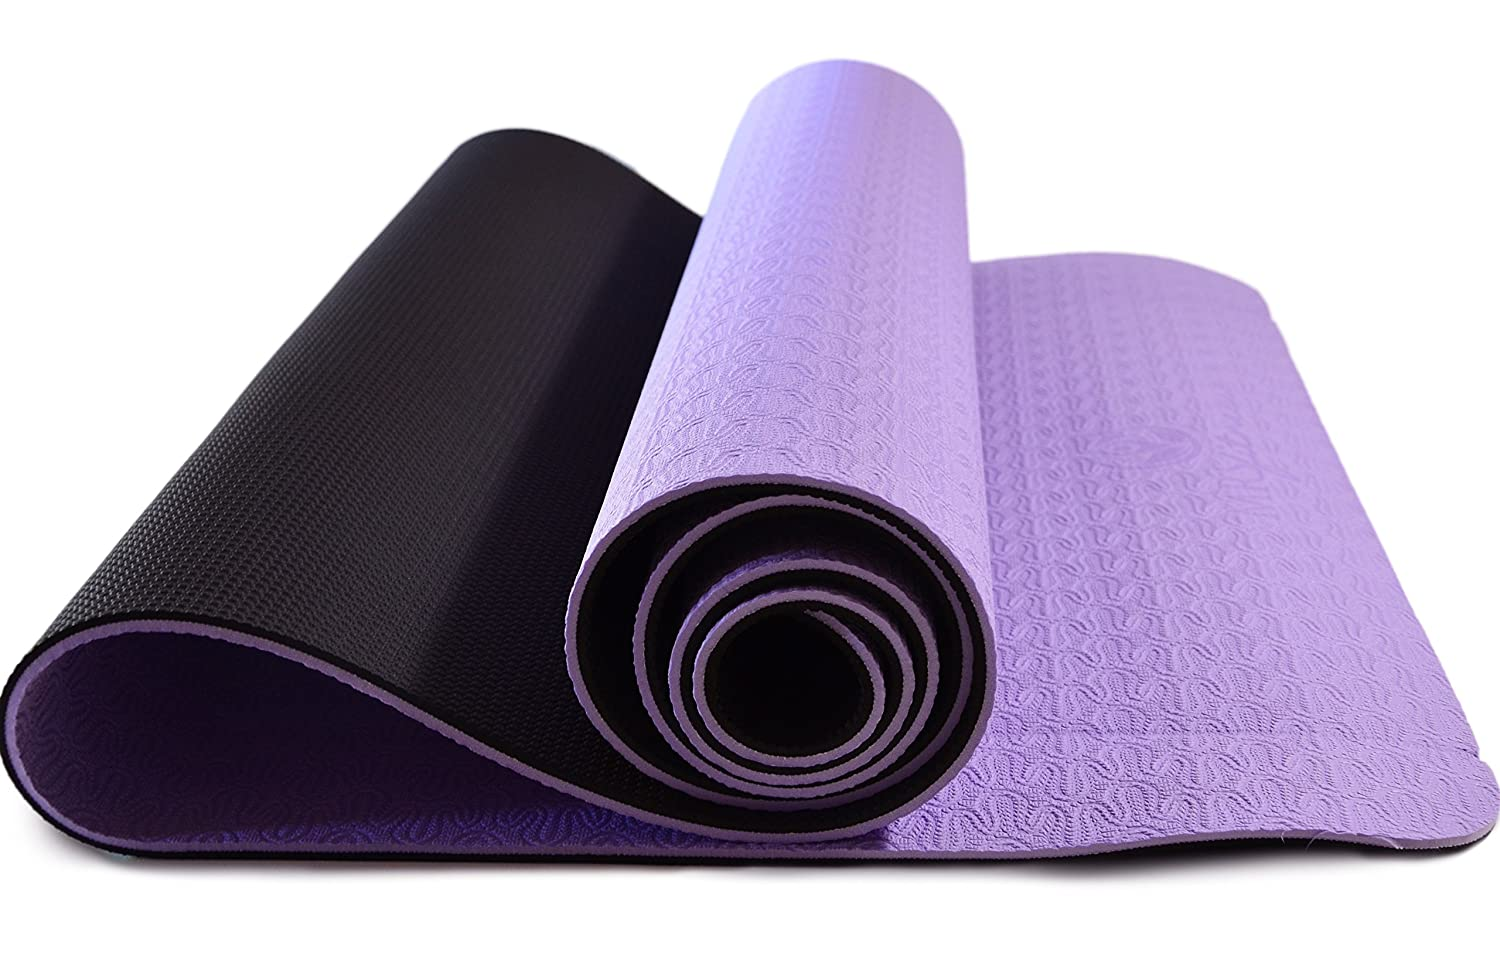 mats with dp extra inch ridge crown sports mat thick yoga goods no outdoors sporting amazon com stick